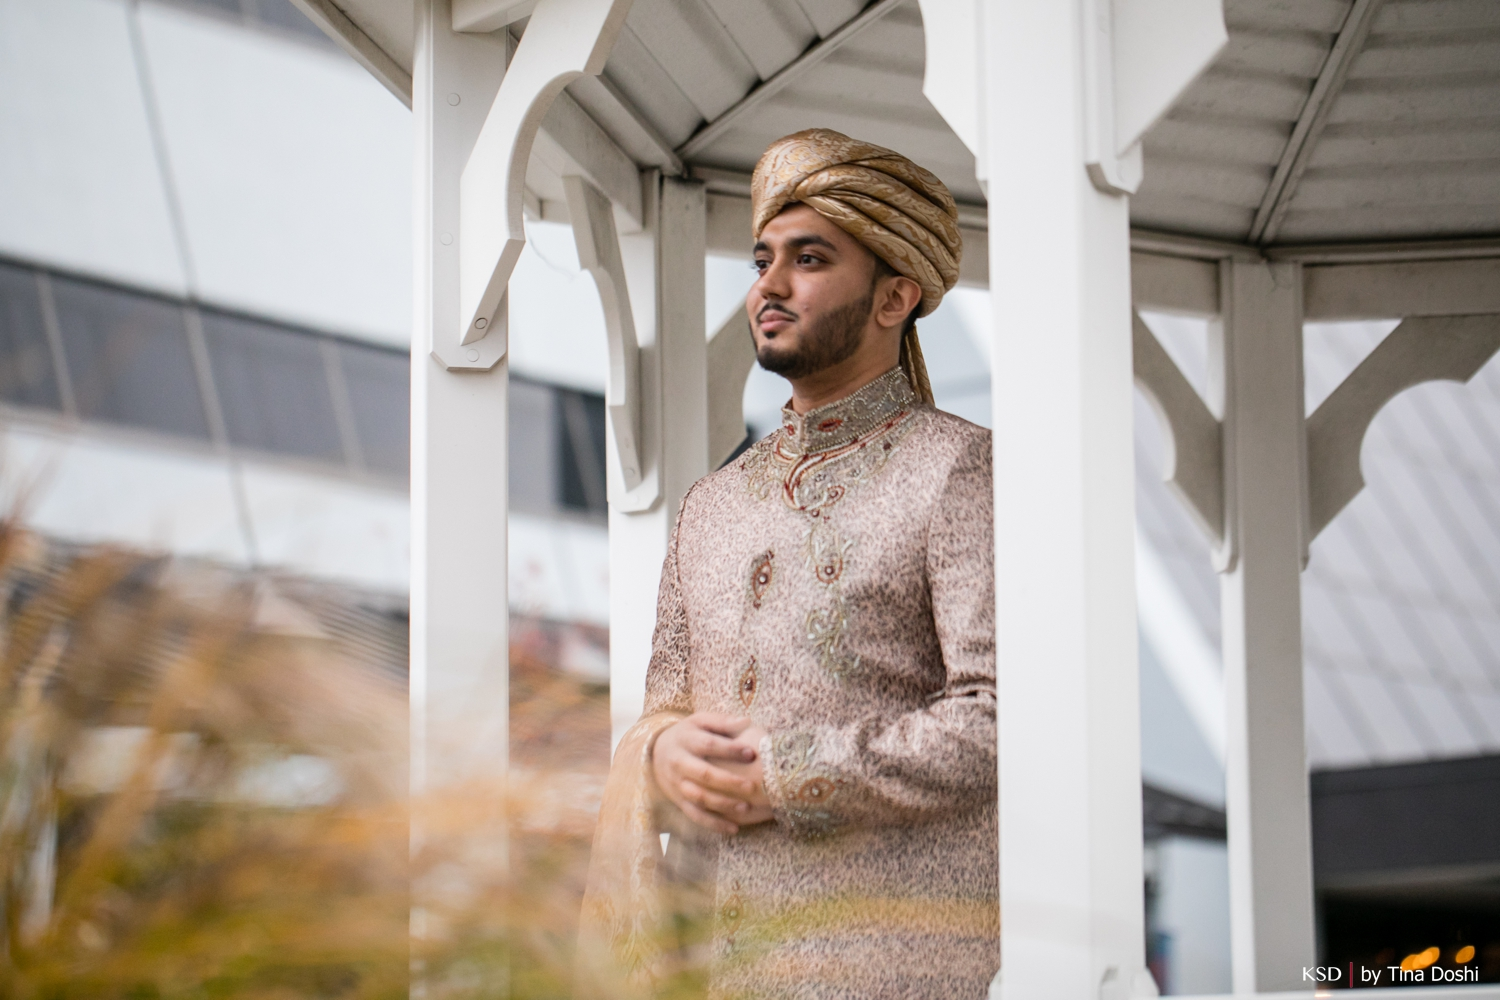 nj_south_asian_wedding_0016